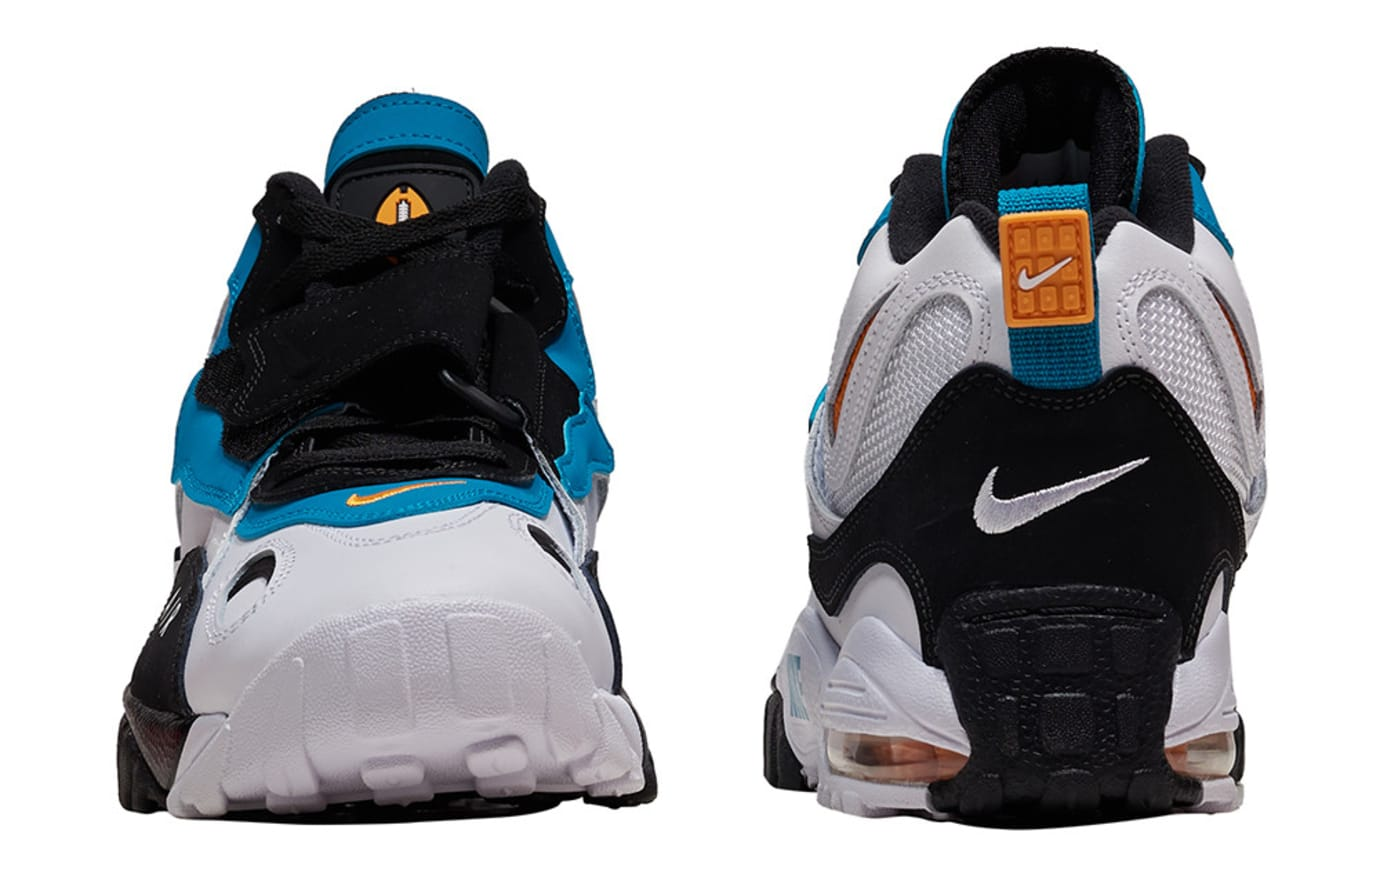 c0e65b057920 Image via Jimmy Jazz Nike Air Max Speed Turf  Dolphins  525225-100 (Front  and Heel)